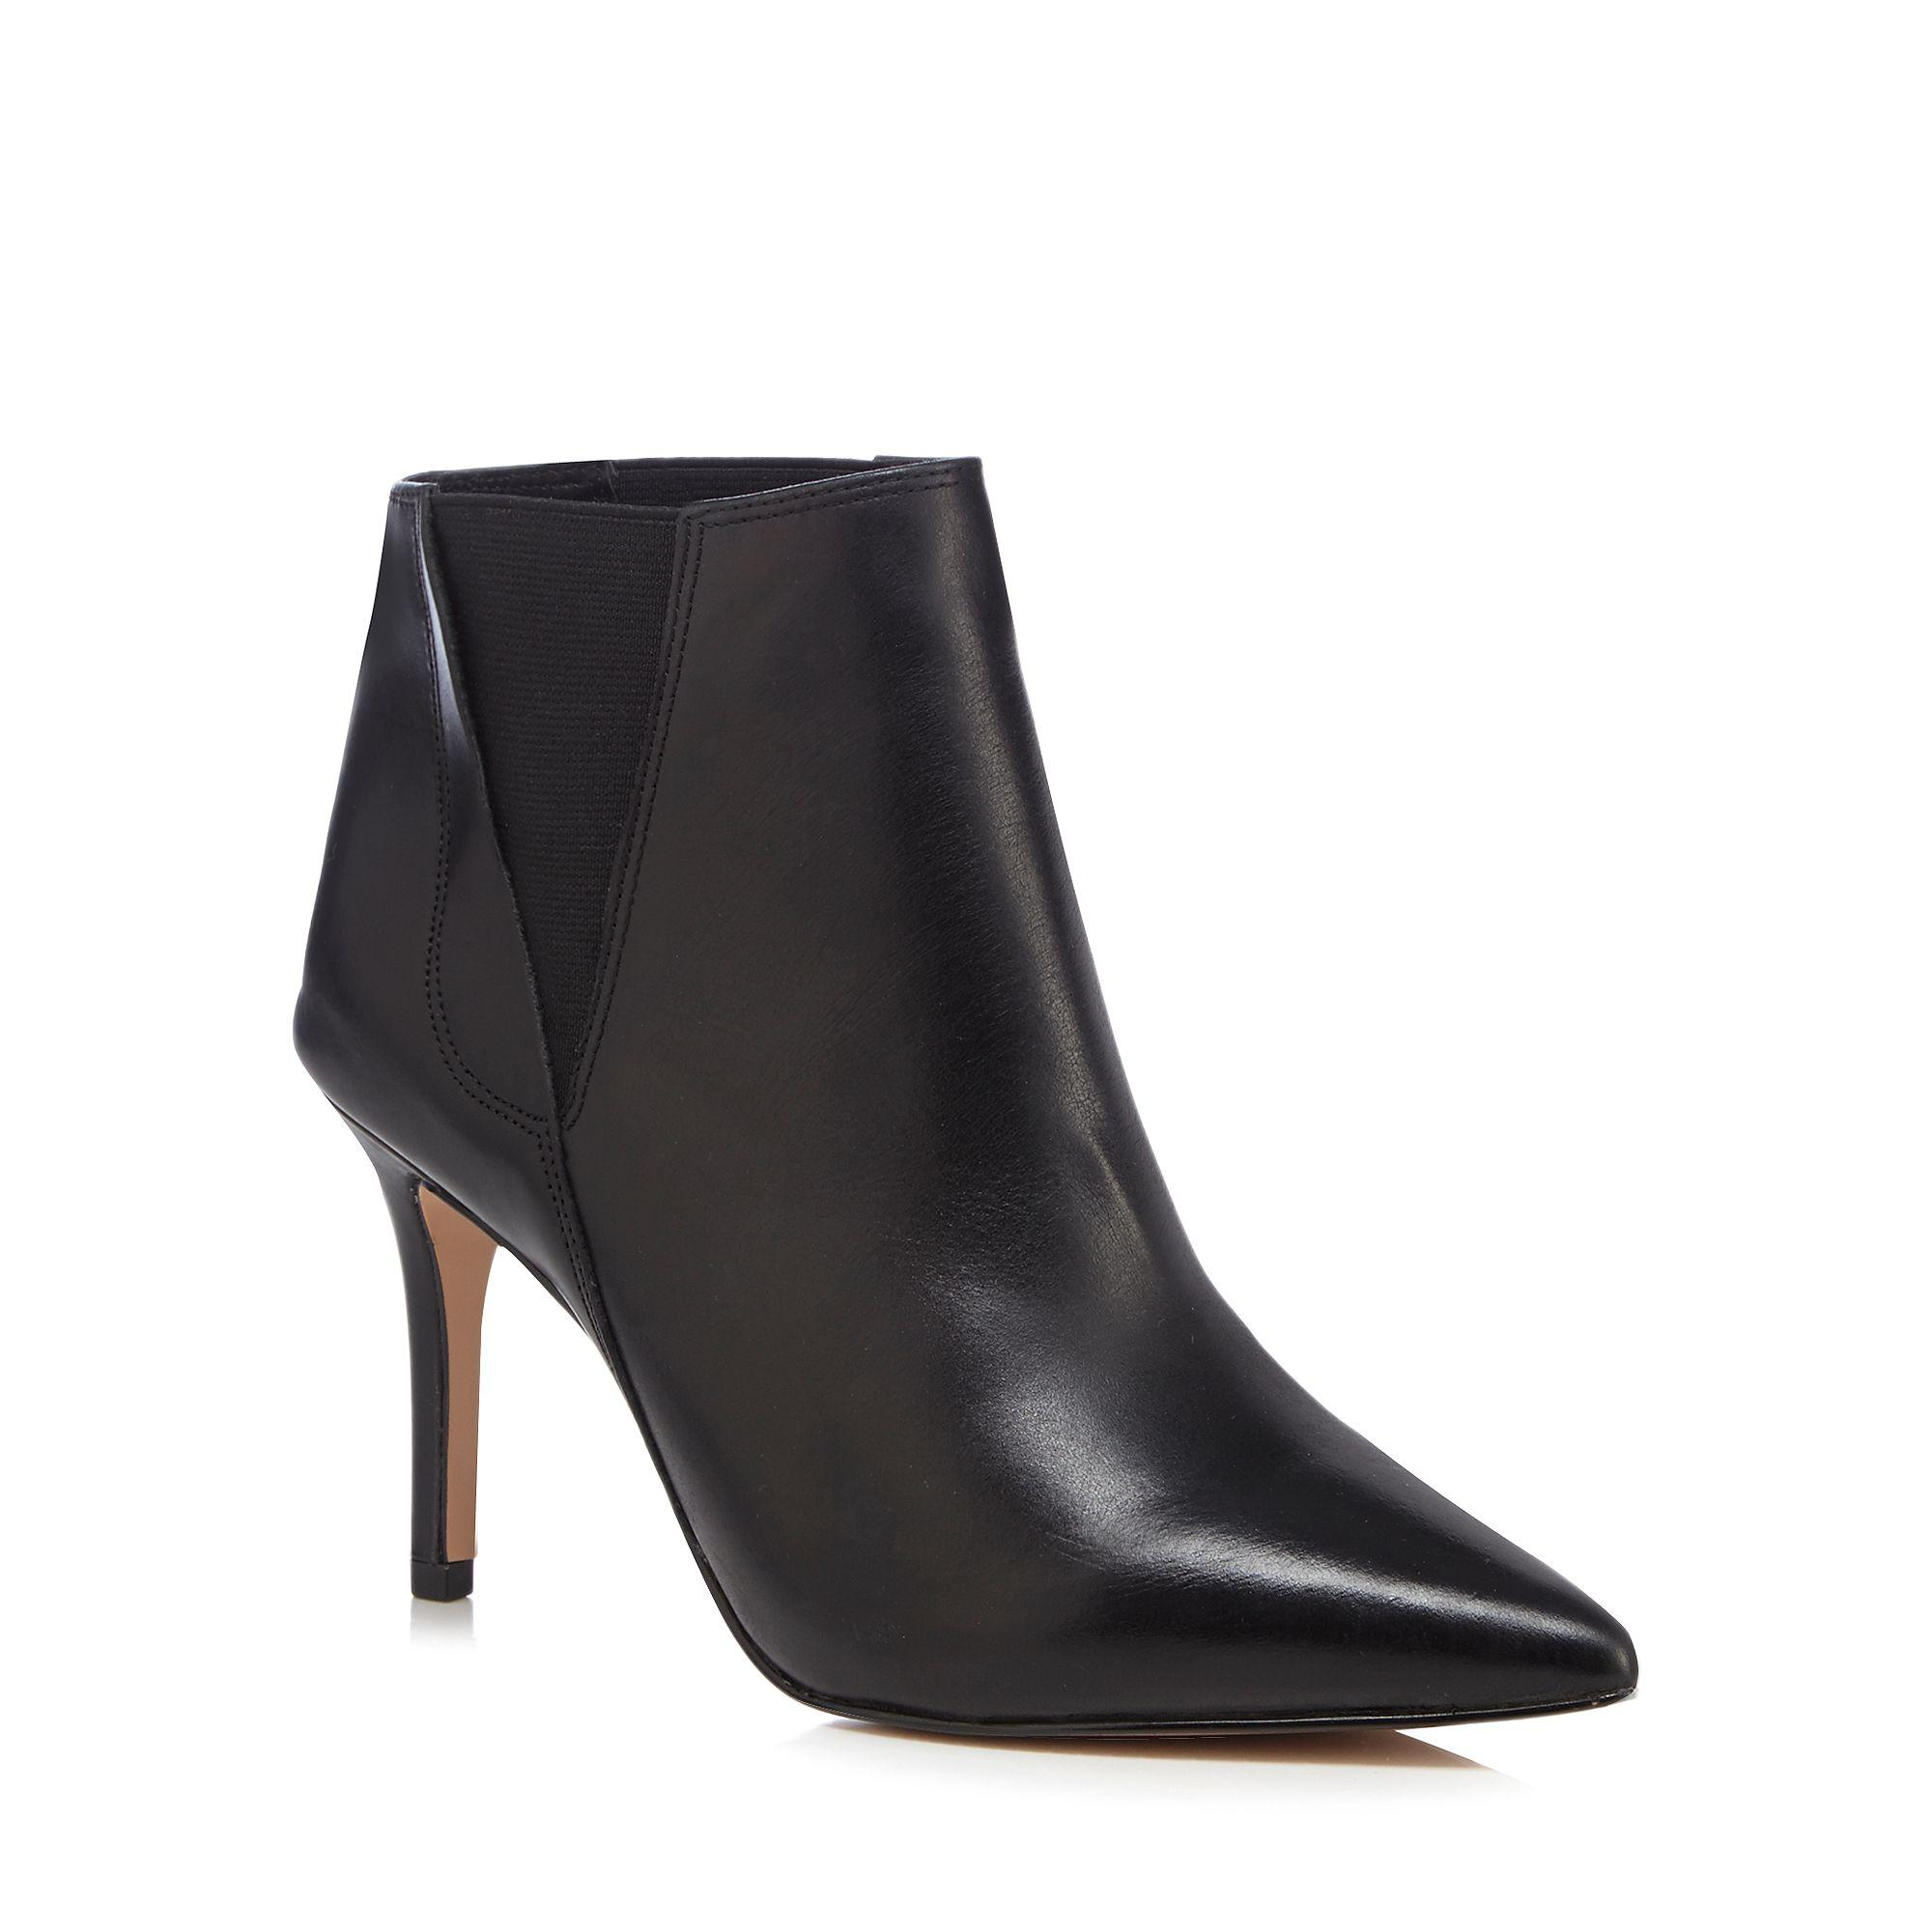 649284aff5c J By Jasper Conran Black Leather Pointed High Ankle Boots in Black ...